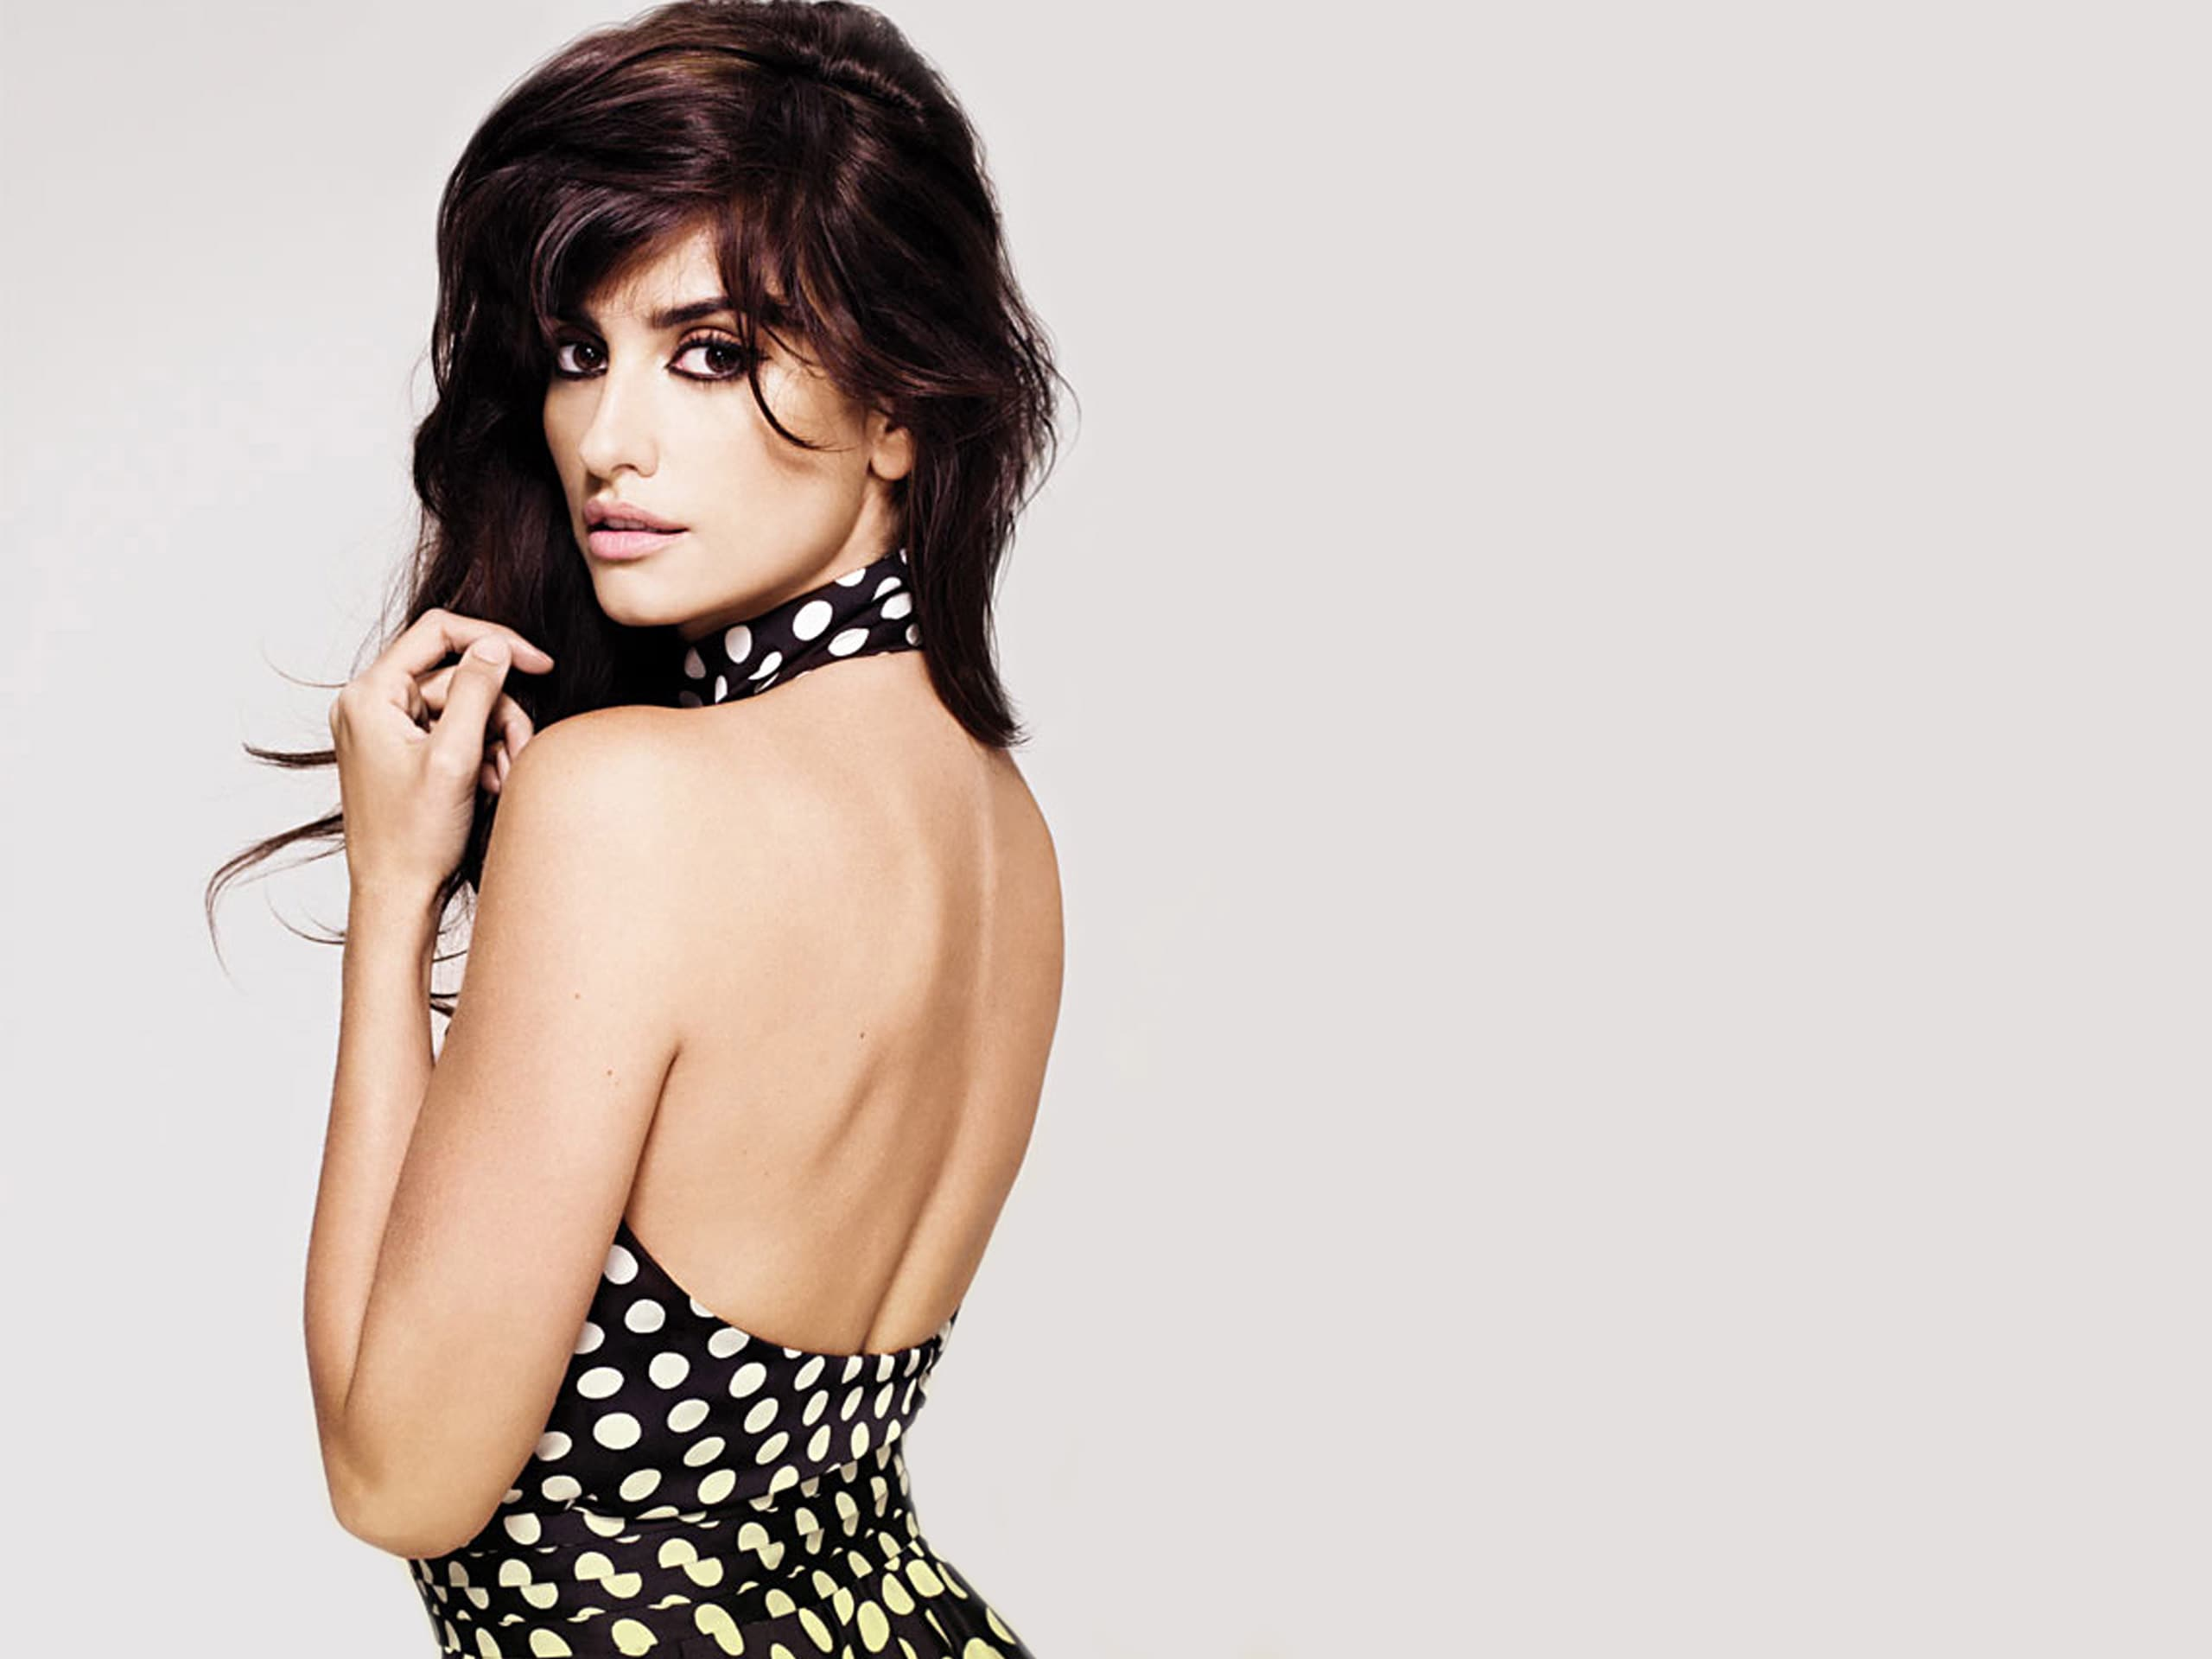 Penelope Cruz Wallpapers hd